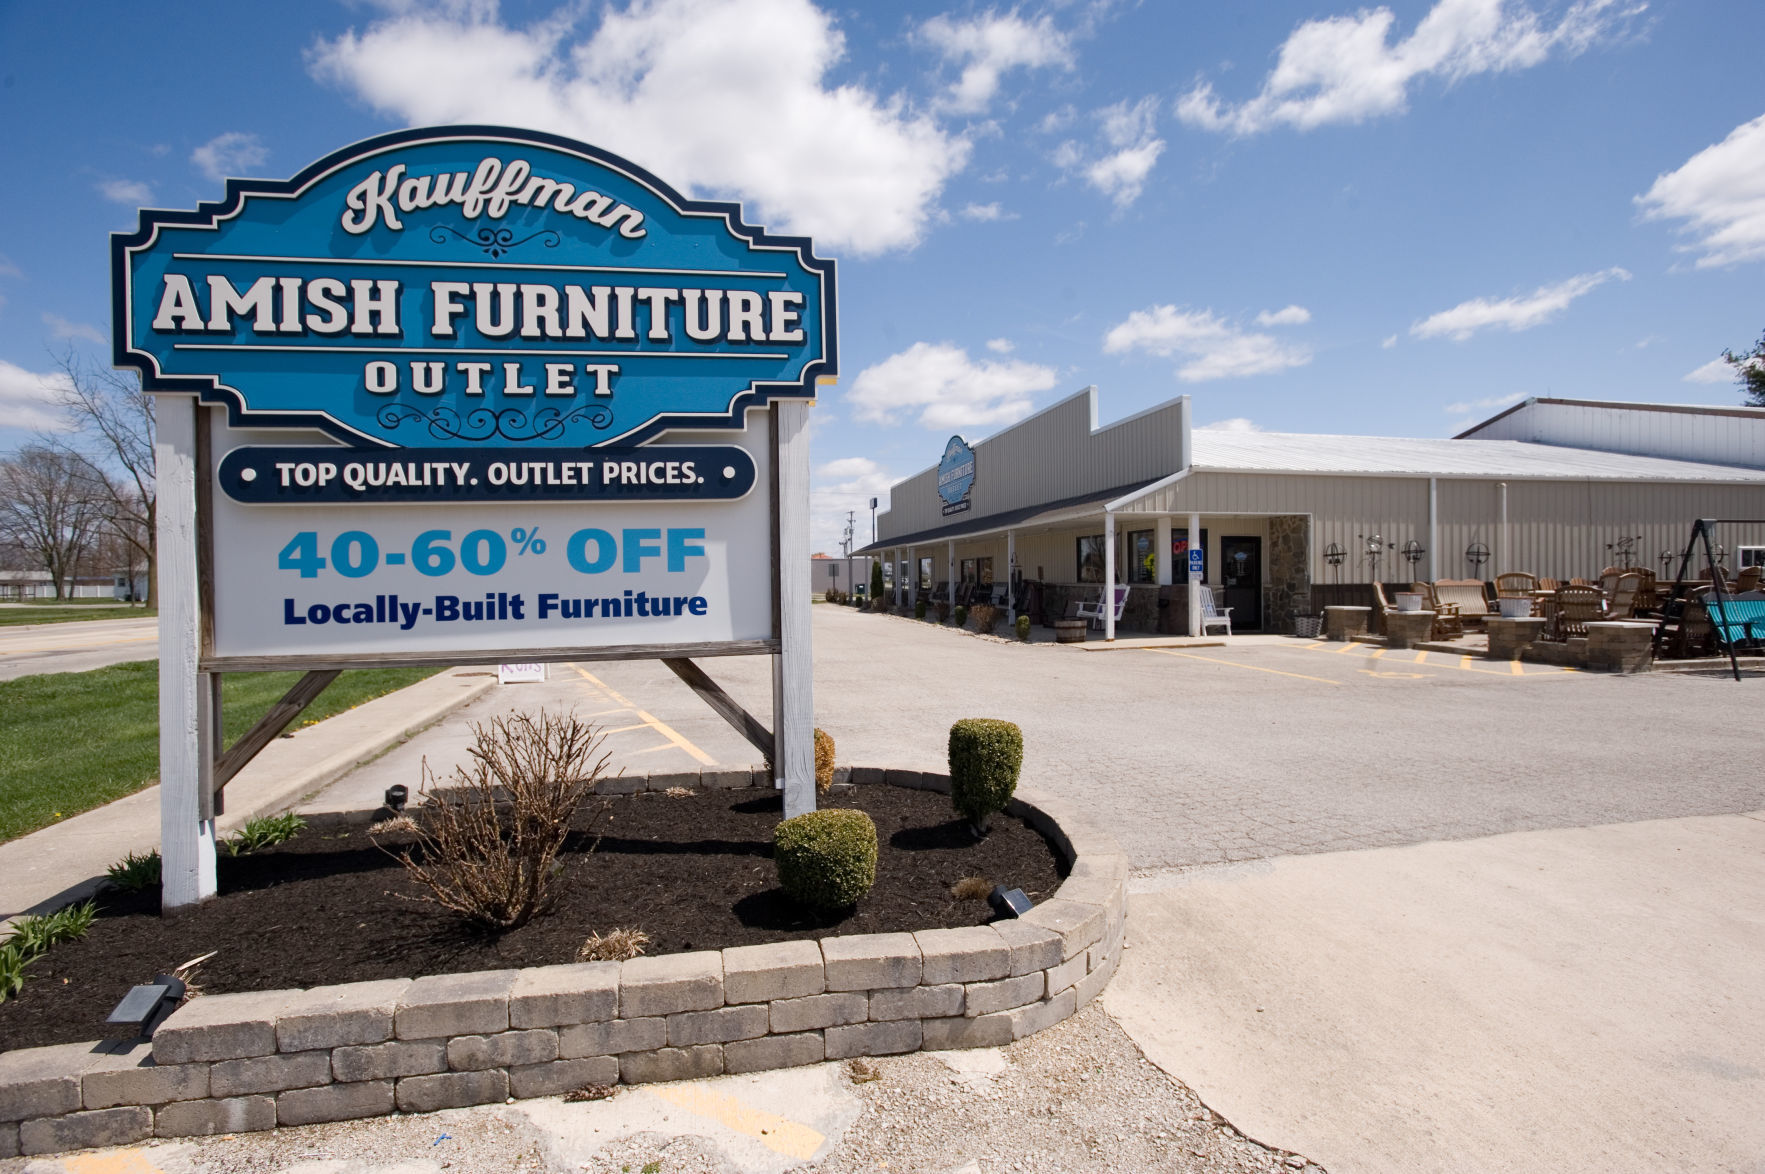 SHOP LOCAL: Kauffman Amish Furniture Outlet Going Strong